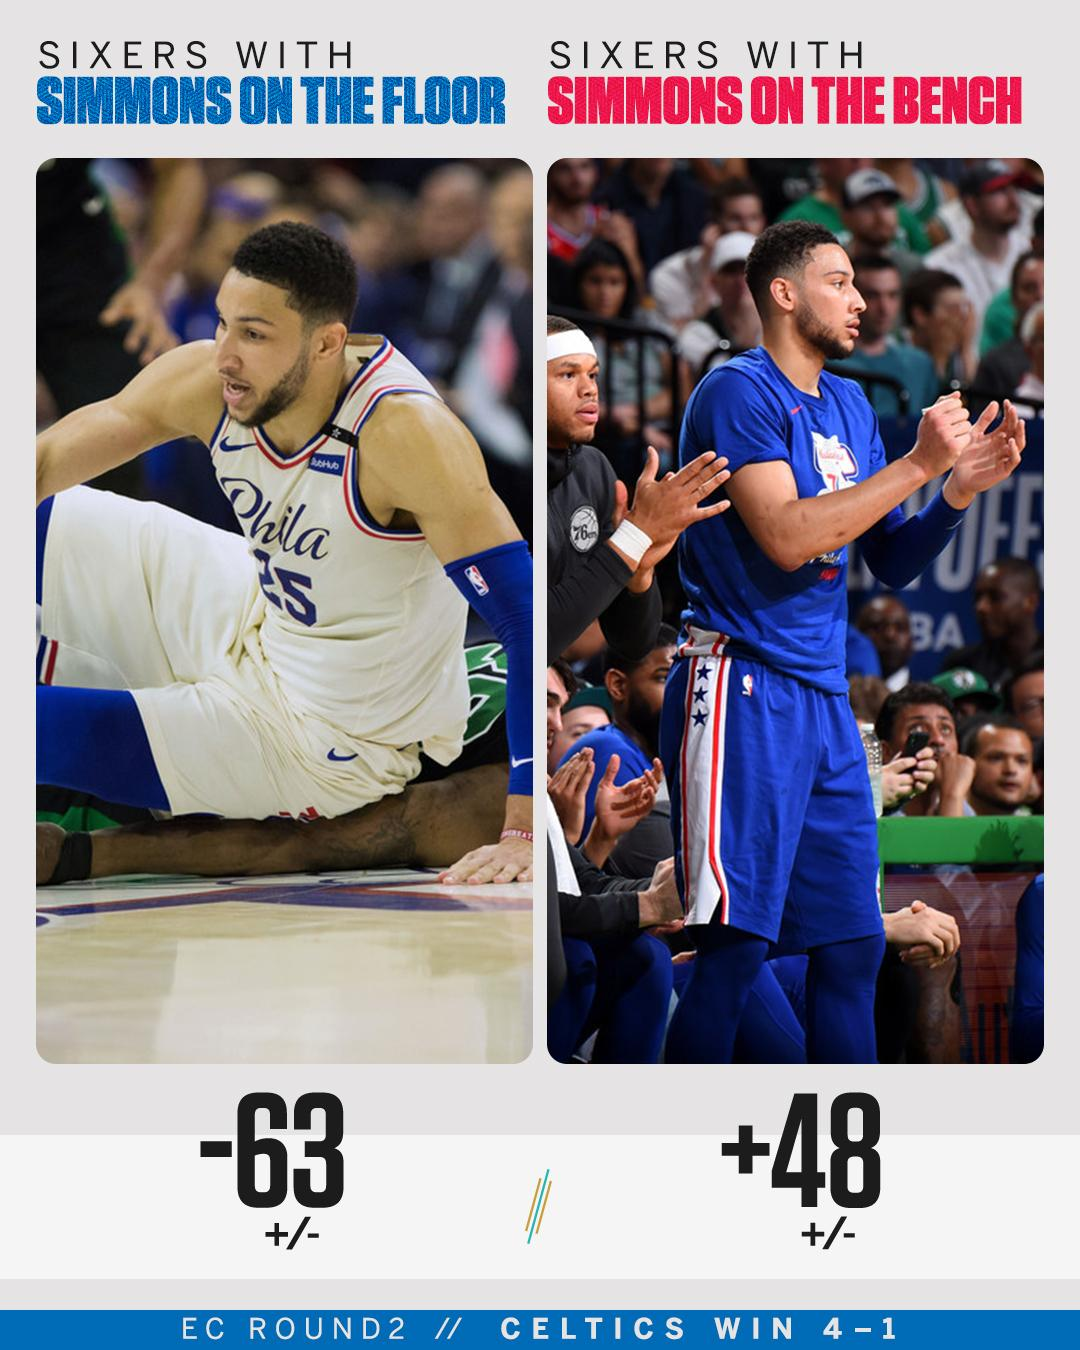 Ben Simmons had the worst +/- of any player in the Celtics/Sixers series. https://t.co/LcTI5ppyNq